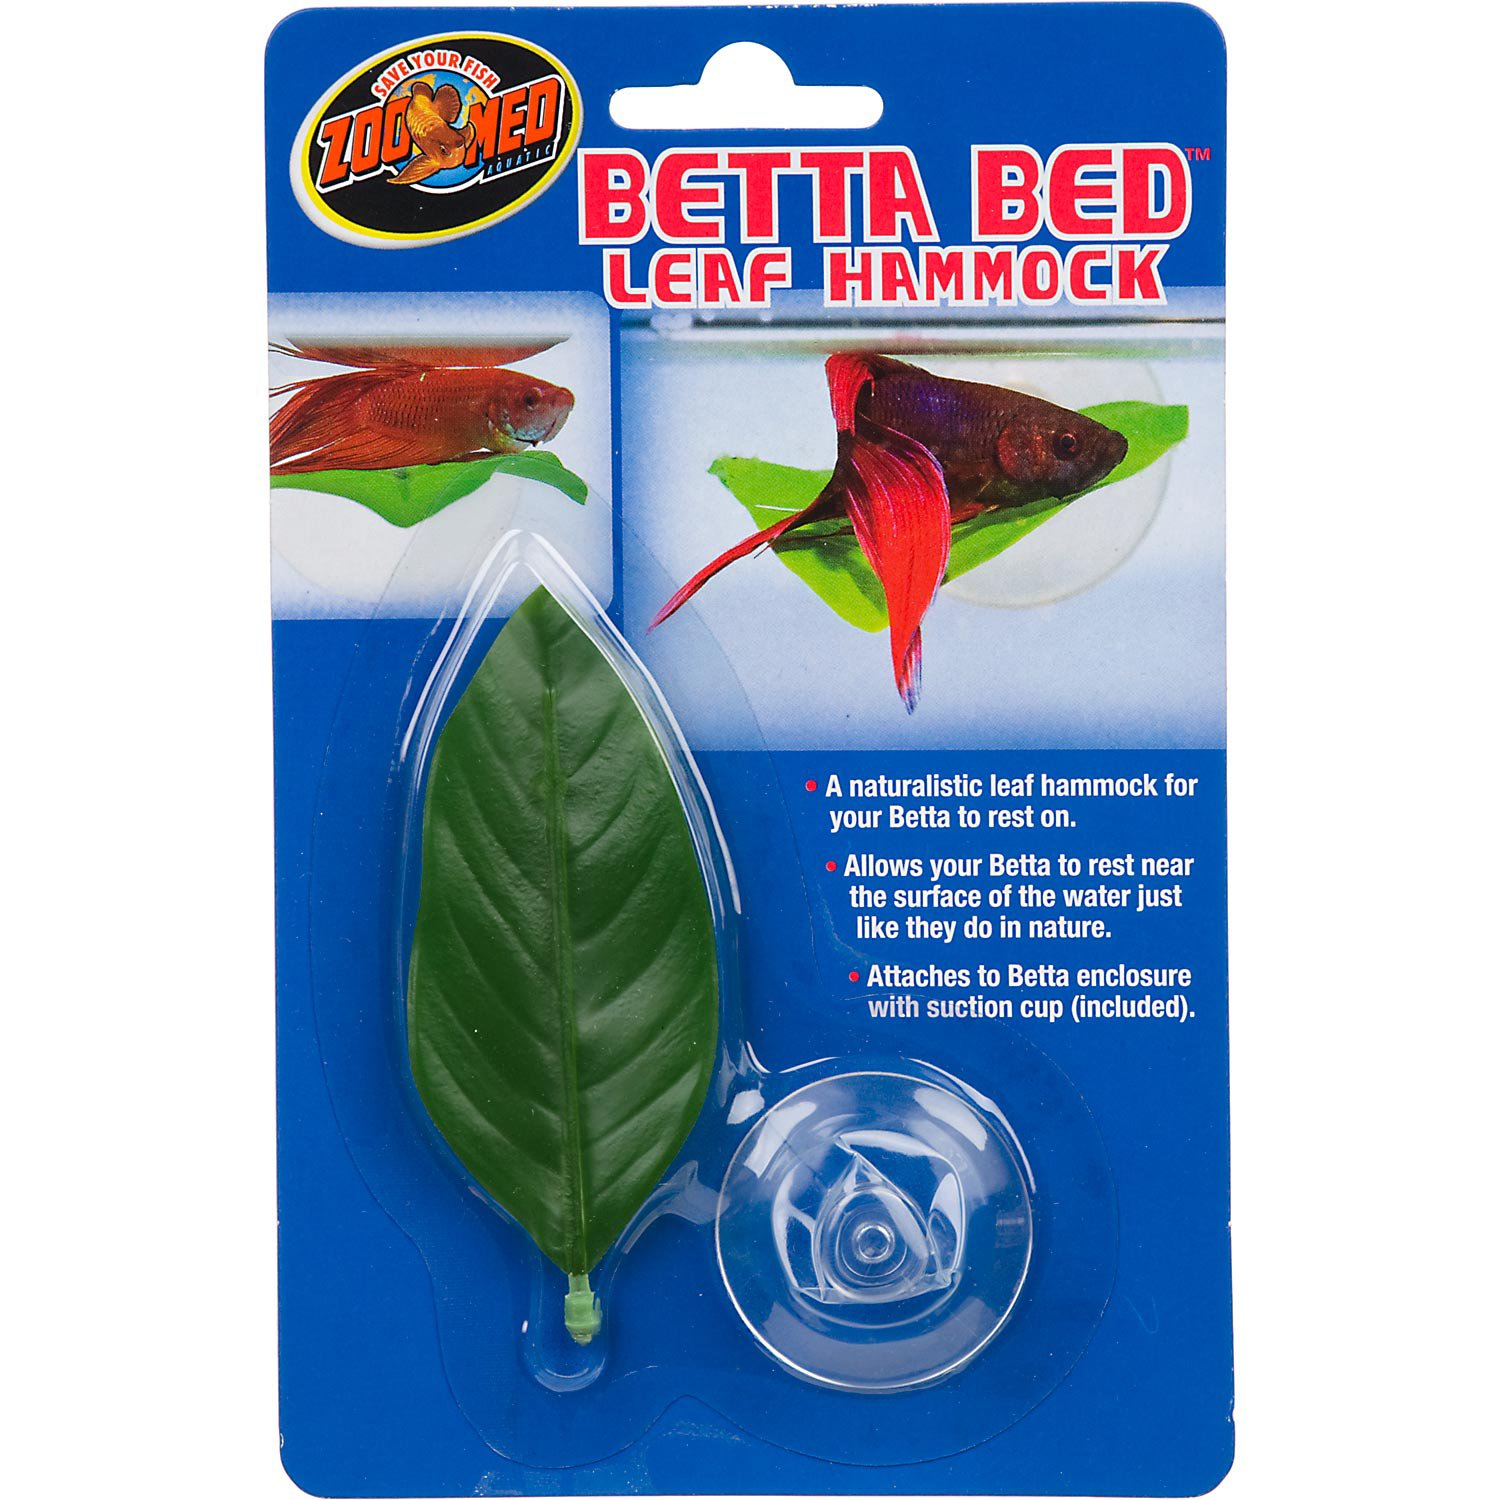 Zoo med betta bed leaf hammock petco for Types of betta fish petco